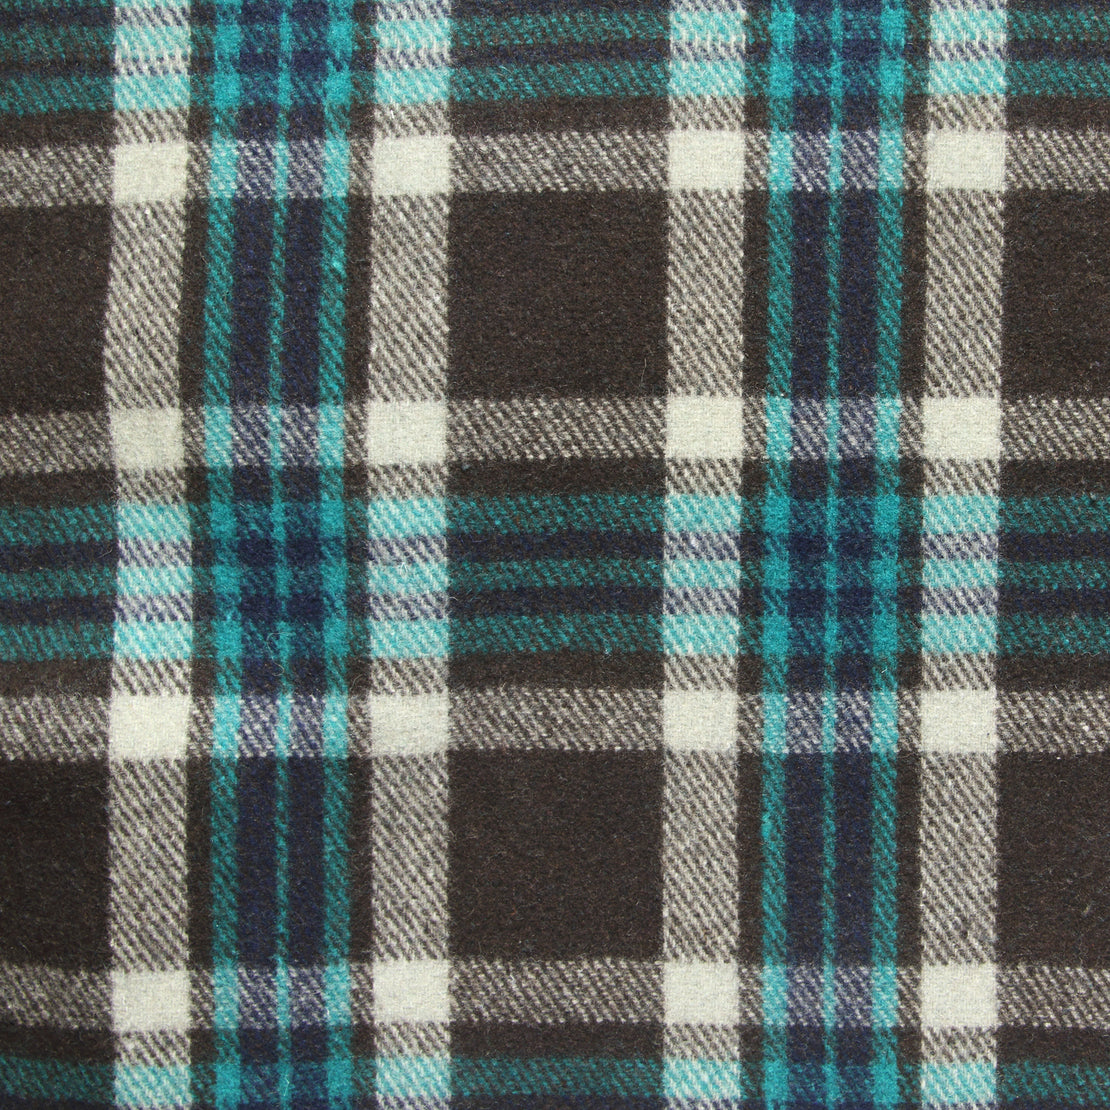 Vintage Indian Wool Plaid Blanket - Navy/White/Teal